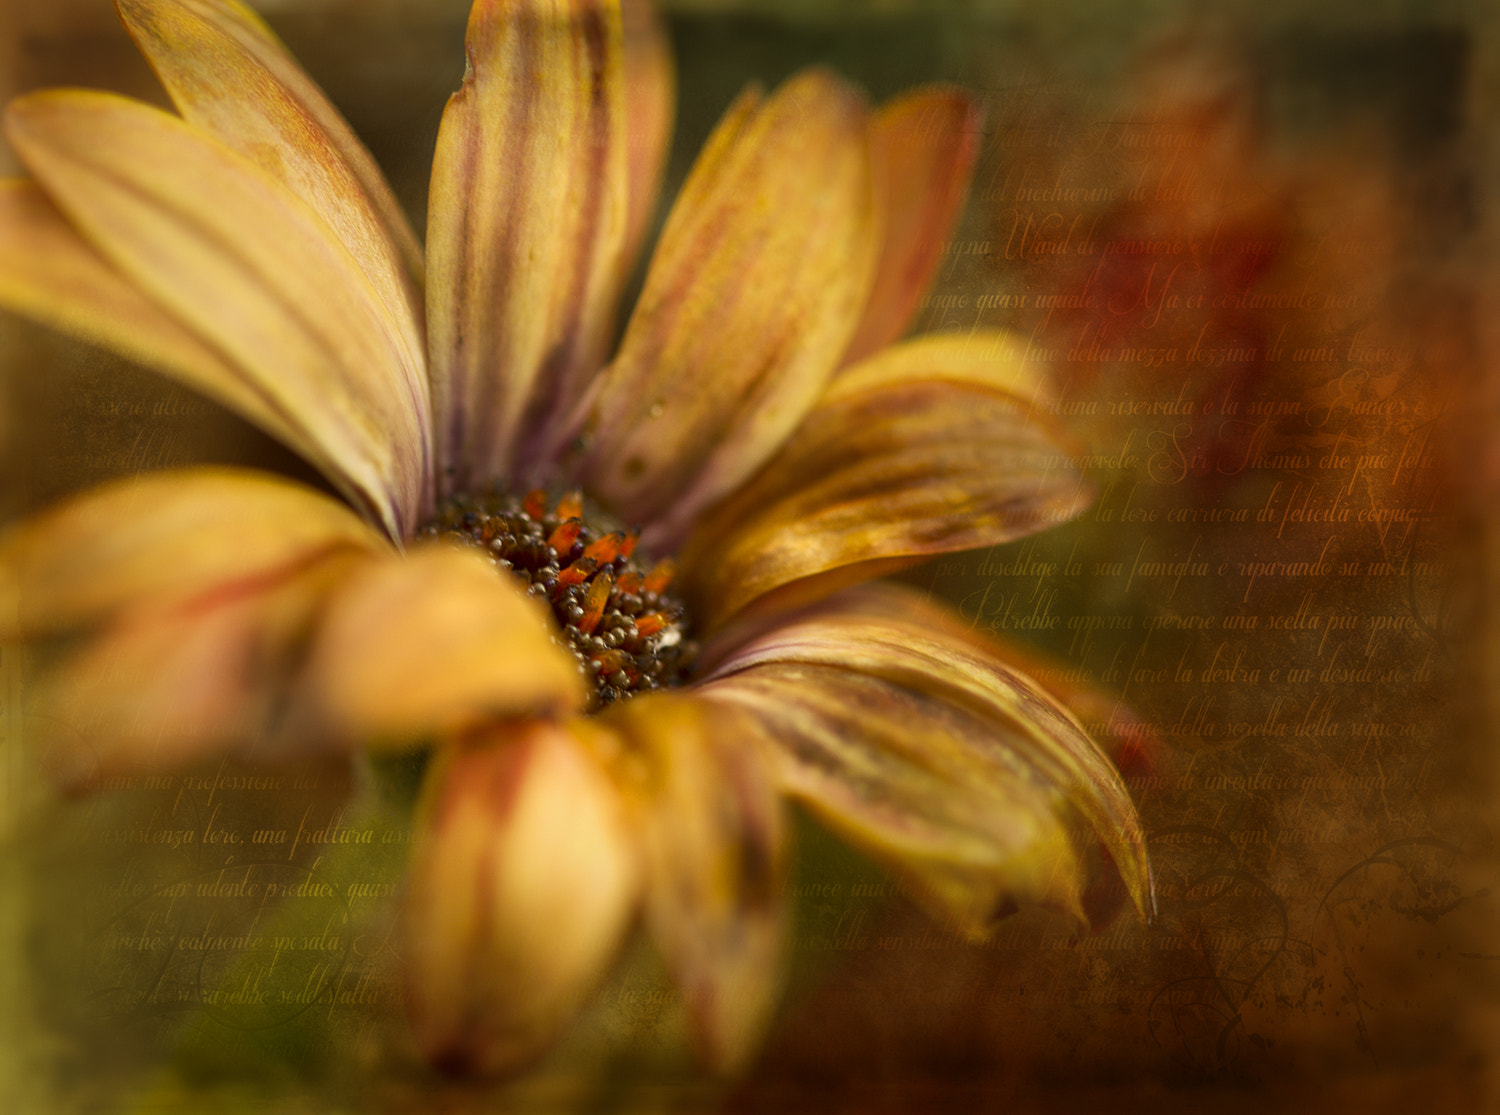 Photograph Winter flower by Mark Tizard on 500px